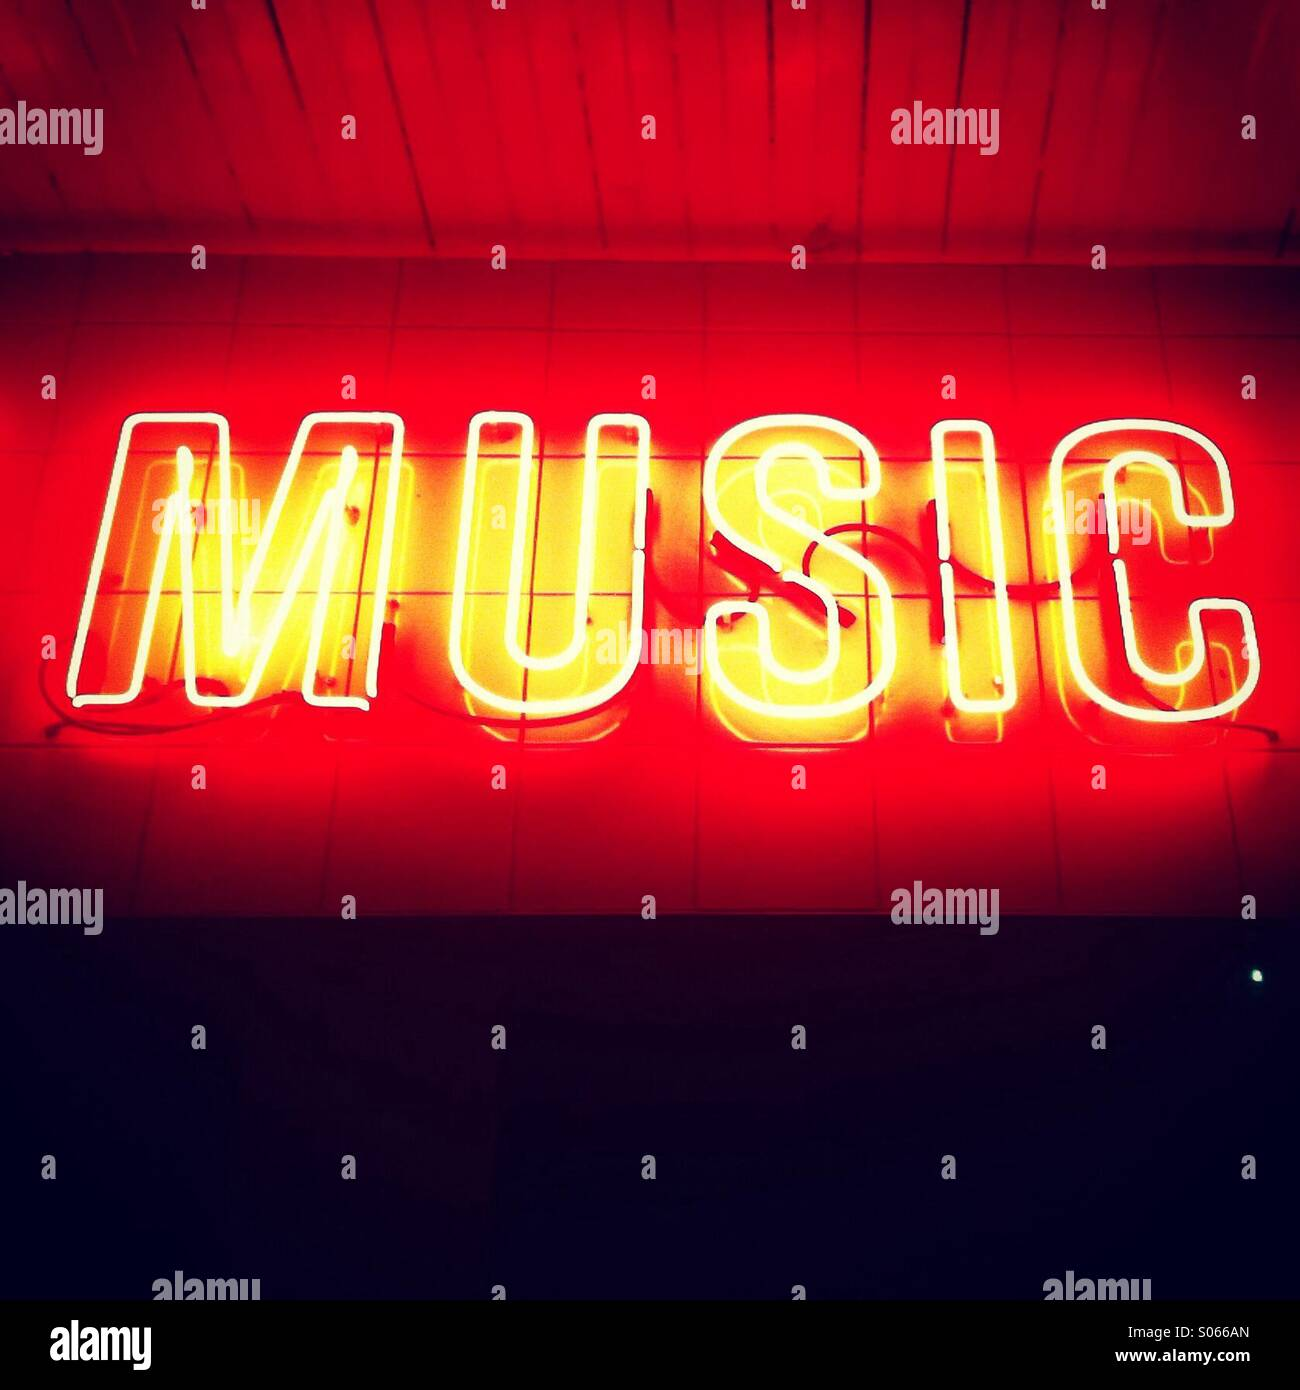 Music written in Neon lights - Stock Image